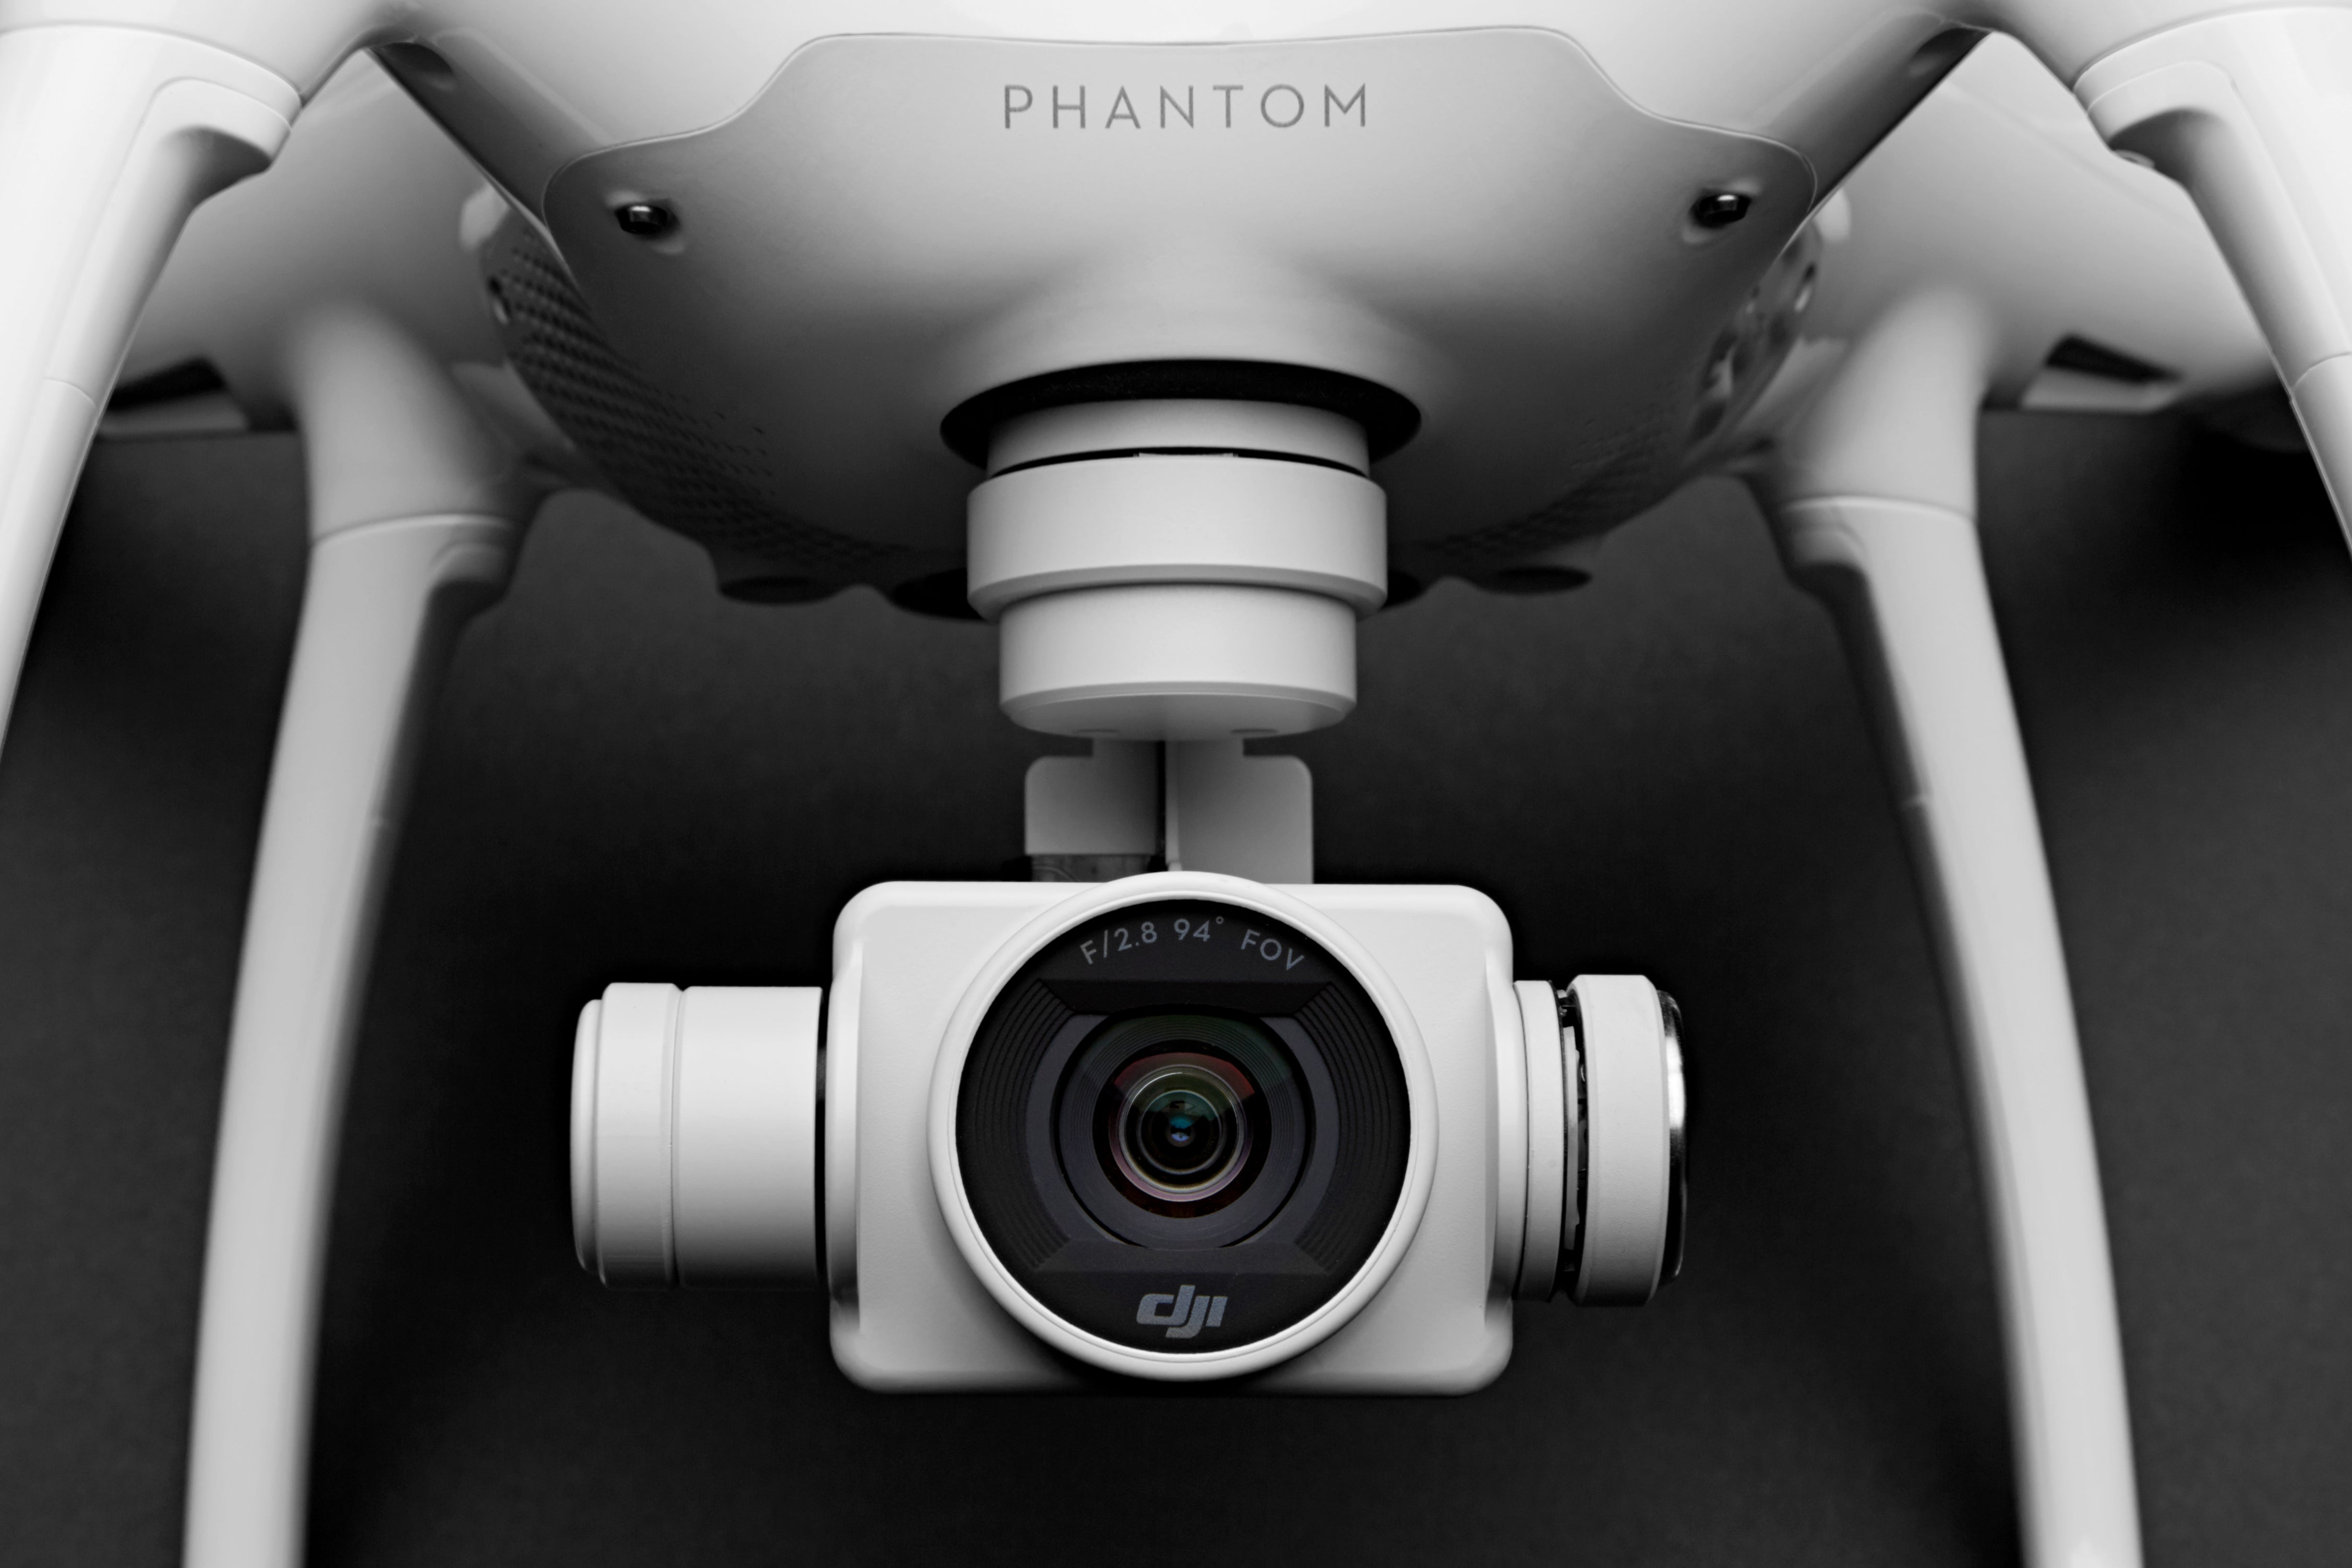 DJI's Phantom 4 Is Blazingly Fast and (Almost) Crash-Proof